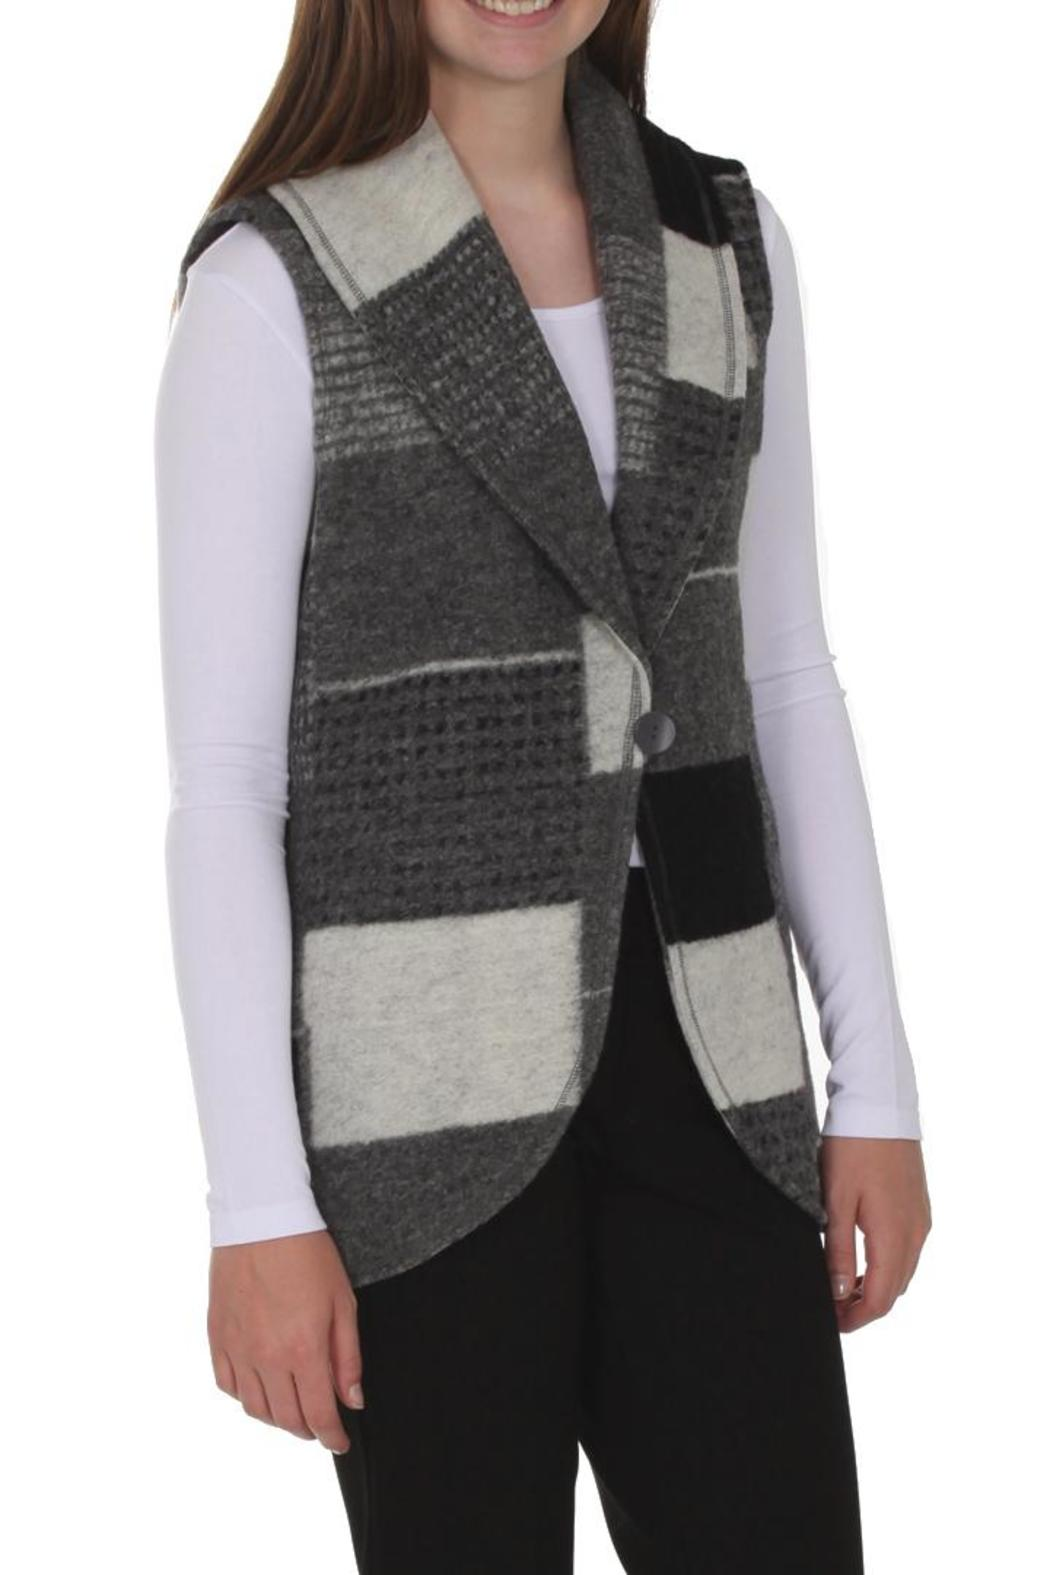 209 West Grey Patchwork Vest - Main Image